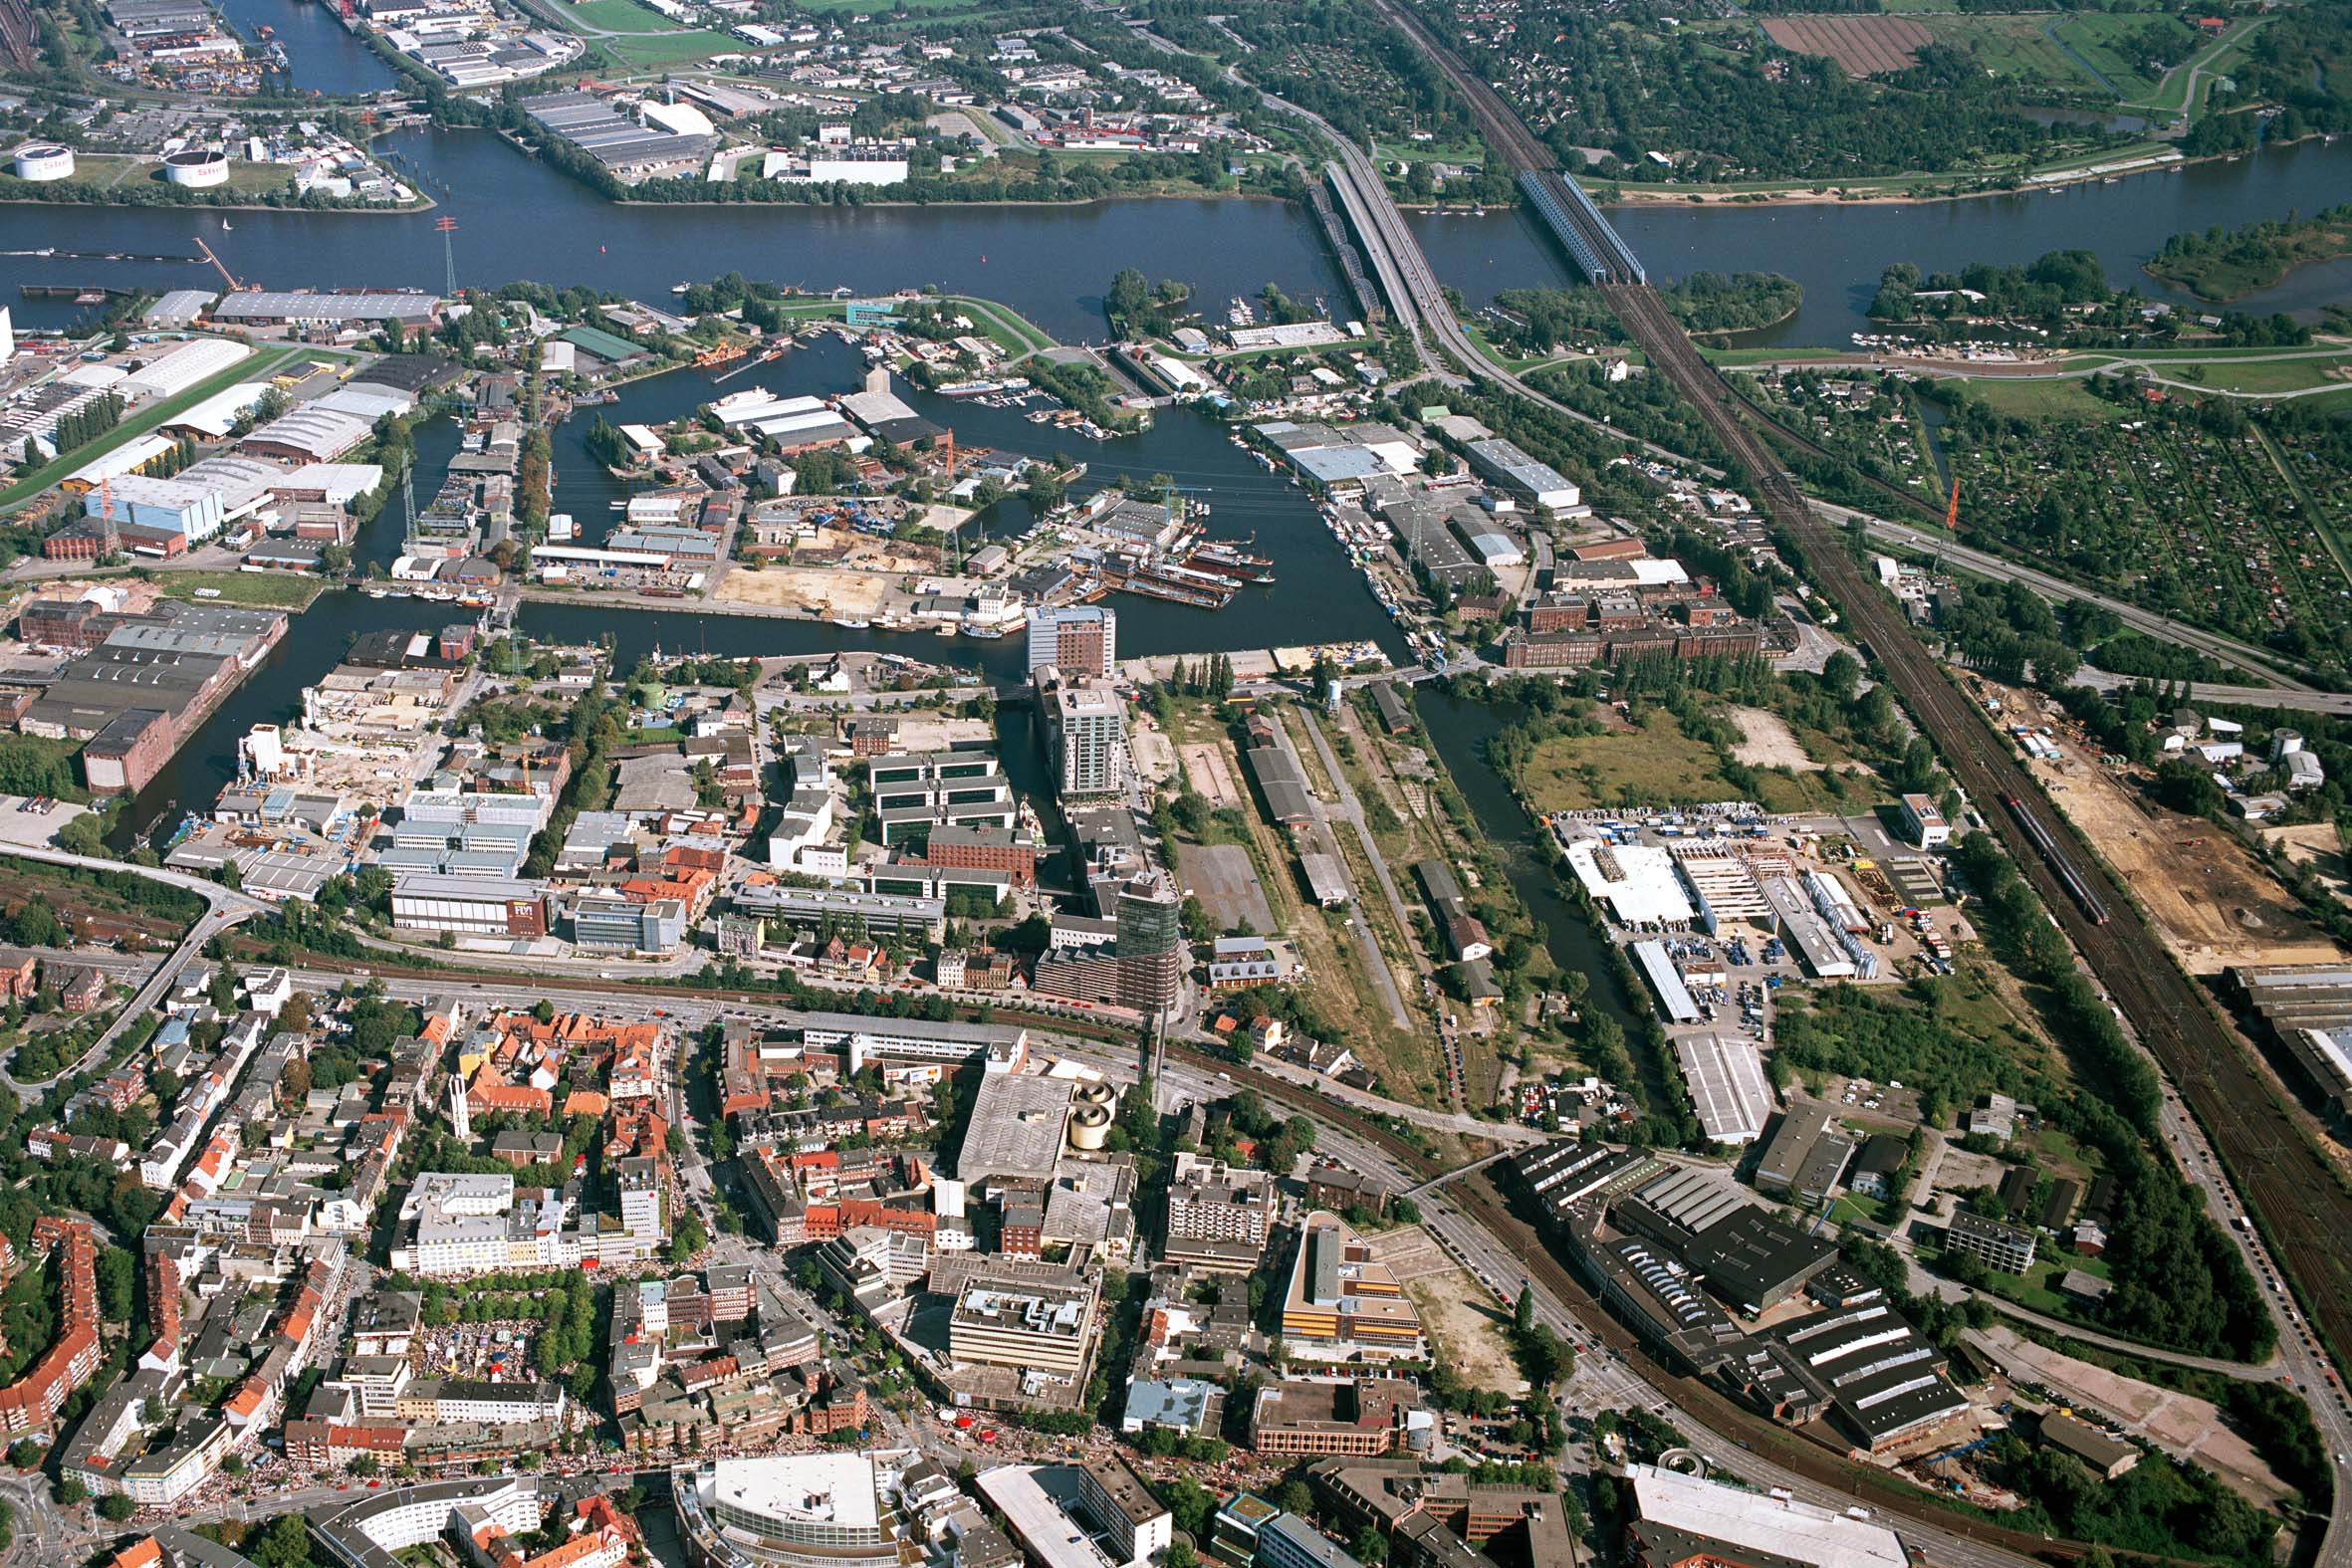 2006 – Luftbild channel hamburg